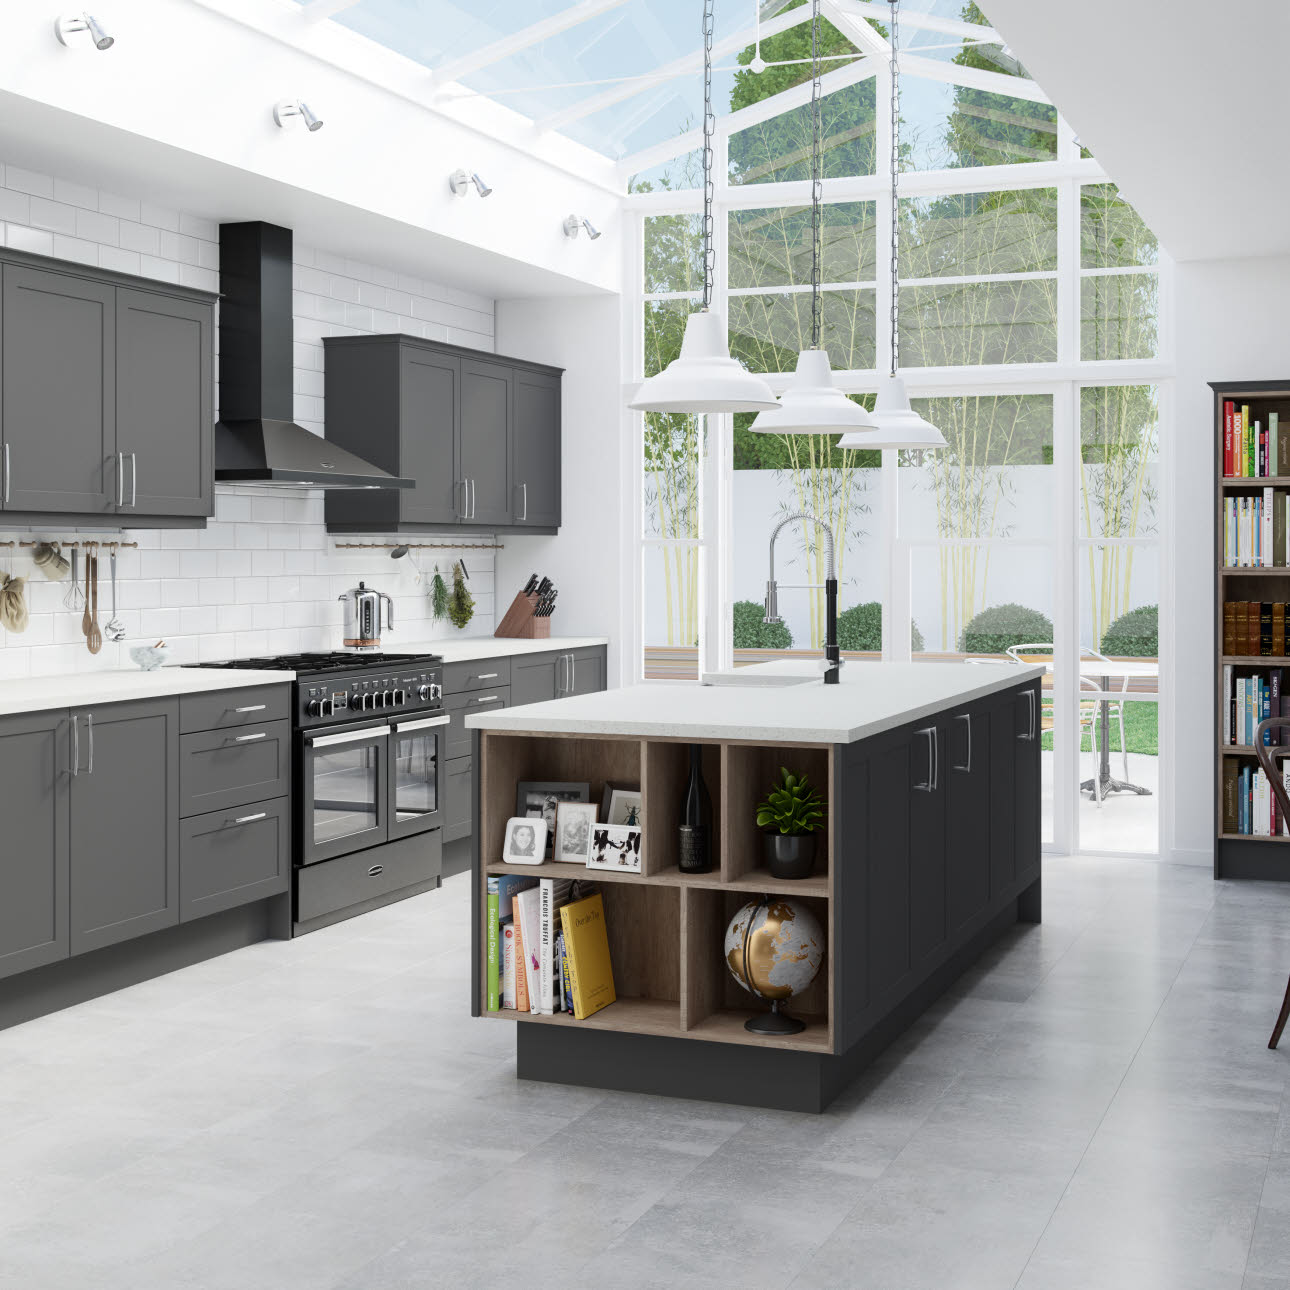 Photos Of Gray Kitchen Cabinets Winchester Grey Kitchen Style And Range Magnet Trade